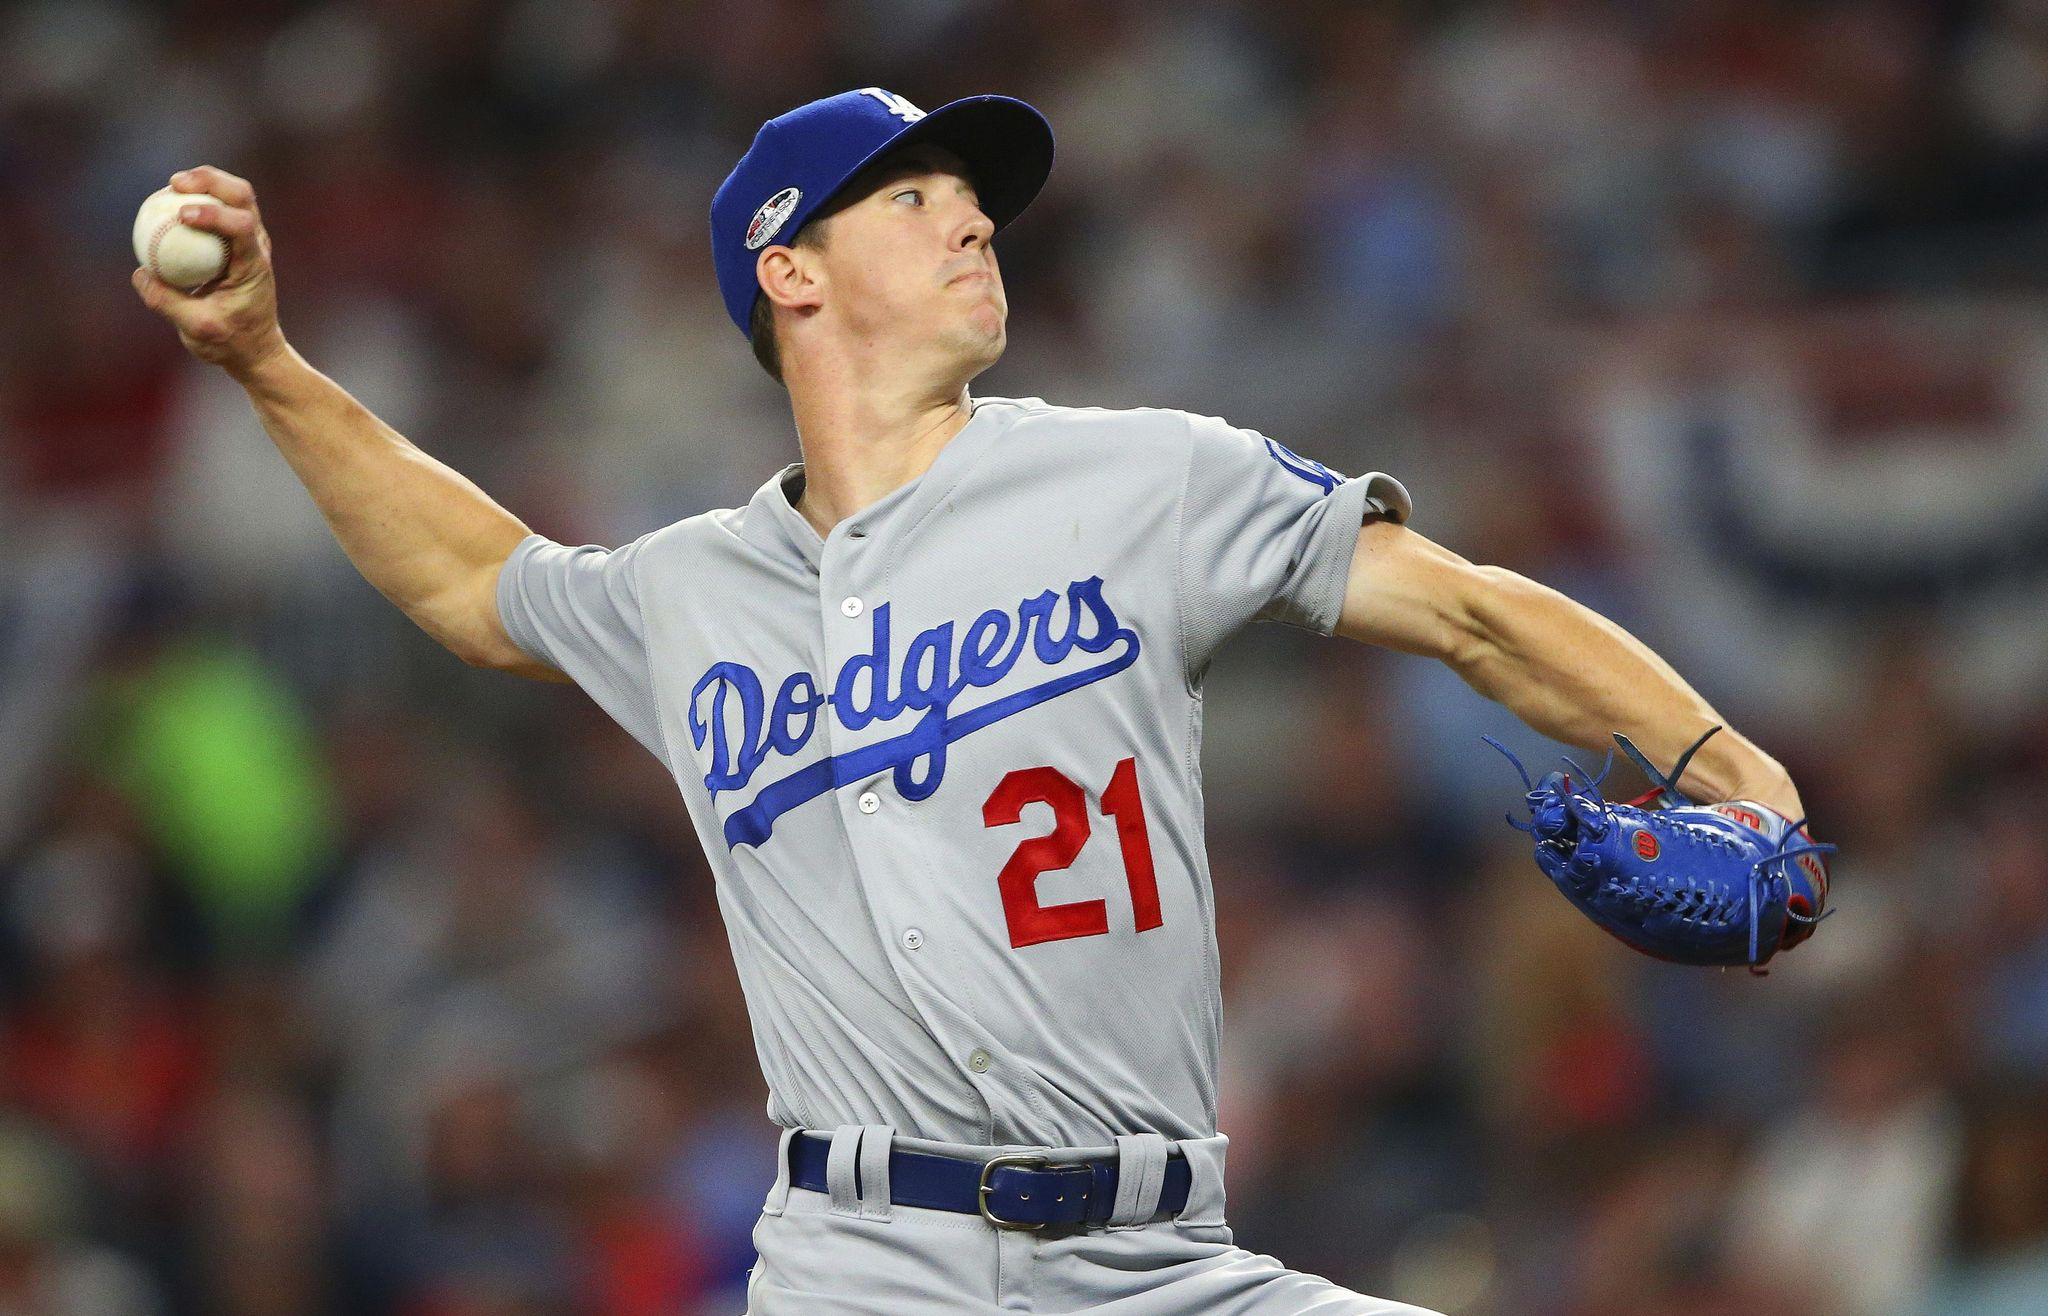 Nlcs-preview_baseball_32496_s2048x1316